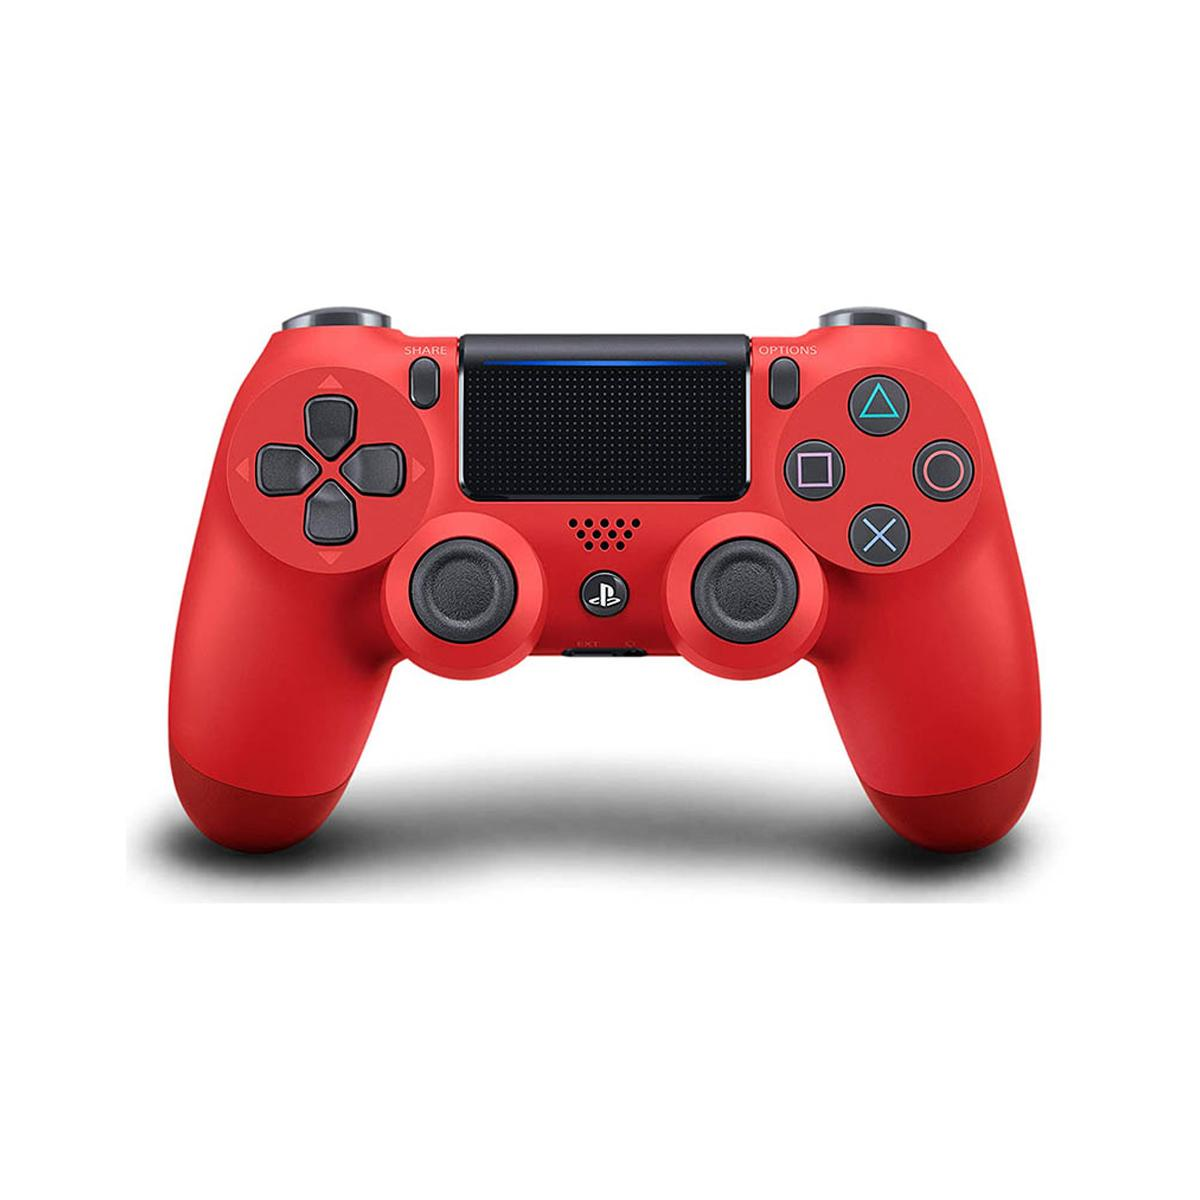 Sony PS4 Wireless Controller - Magma Red